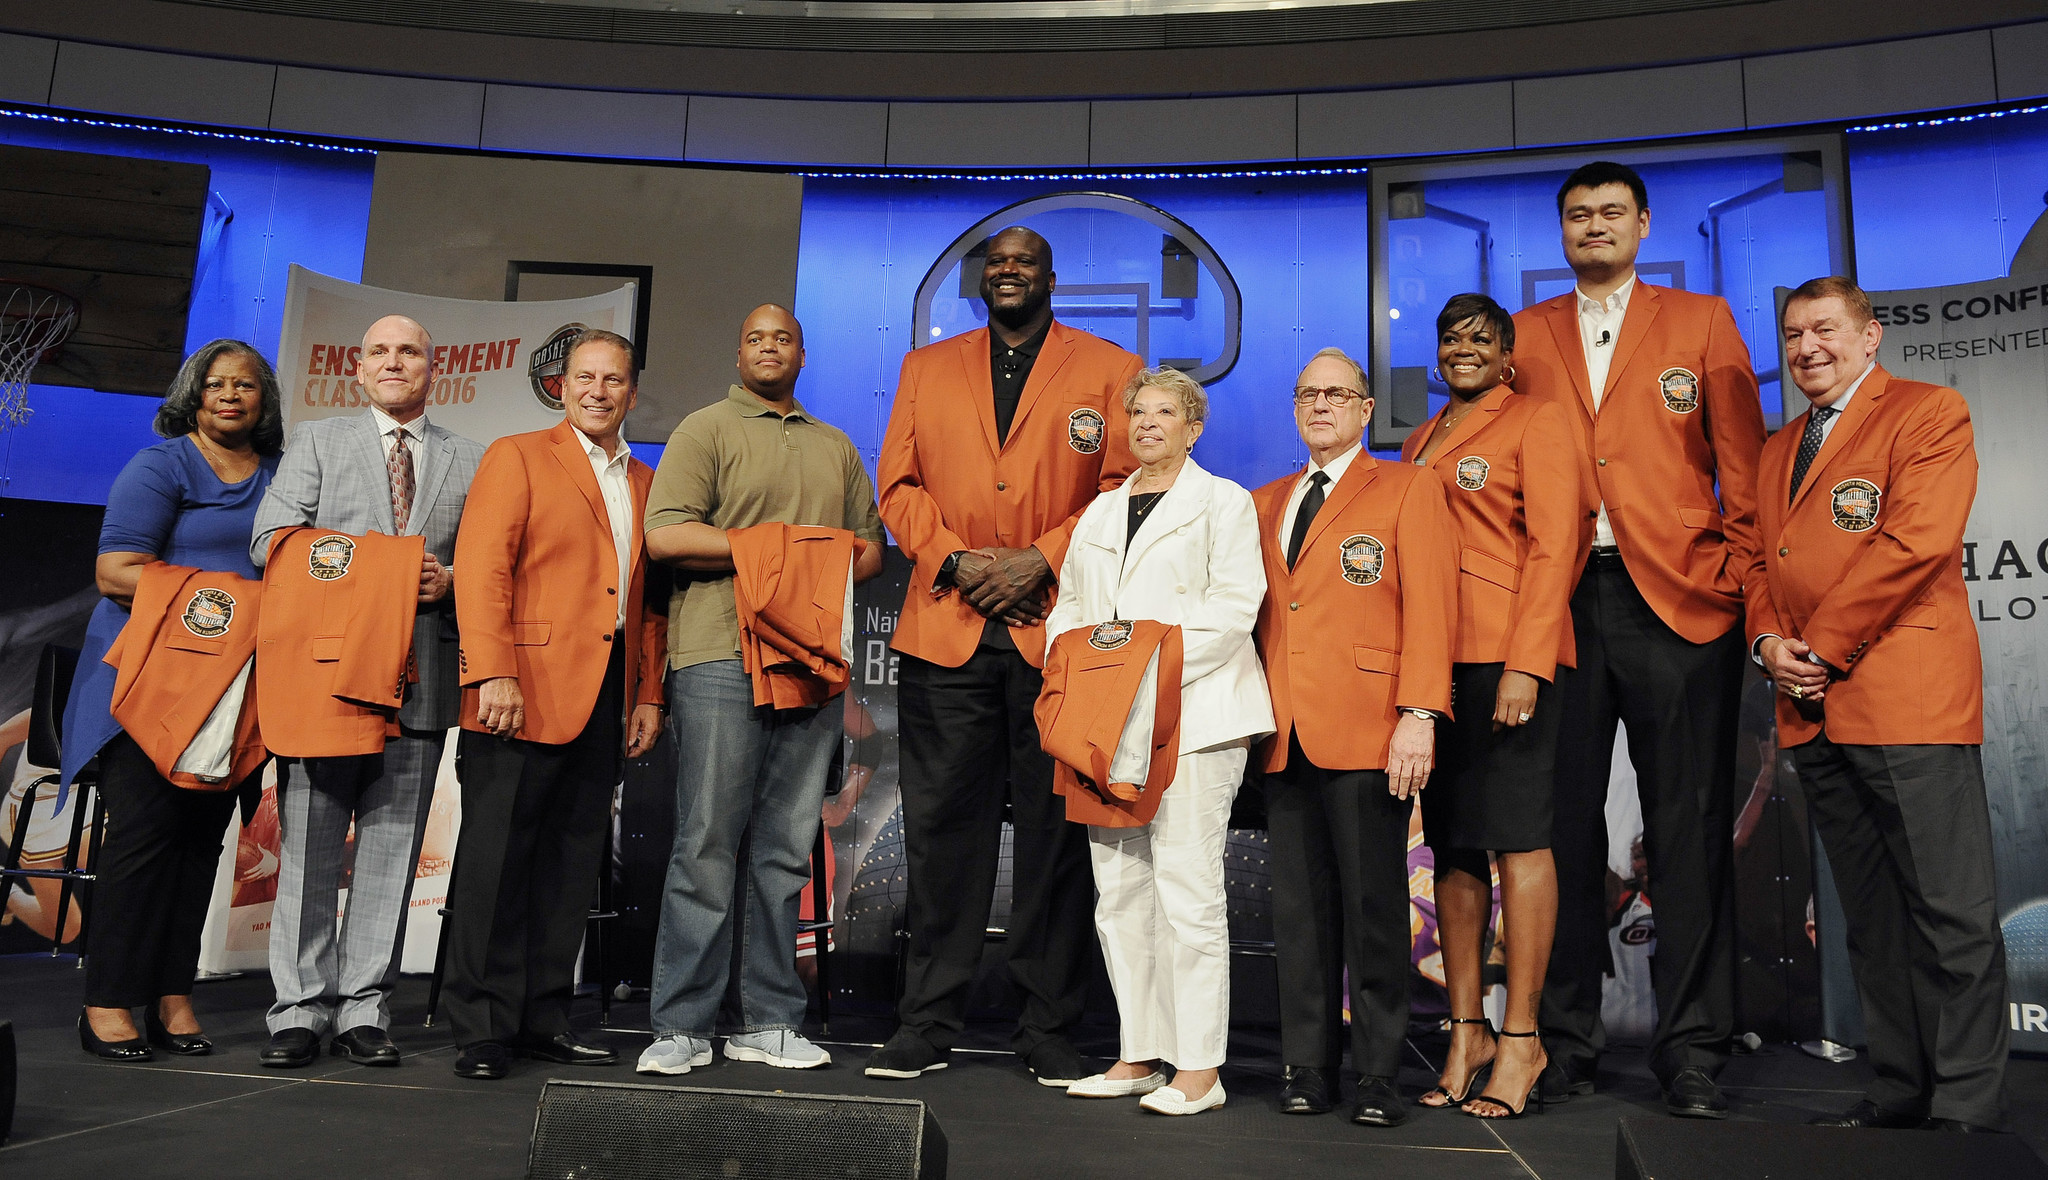 Basketball Hall of Famers orange jackets with induction